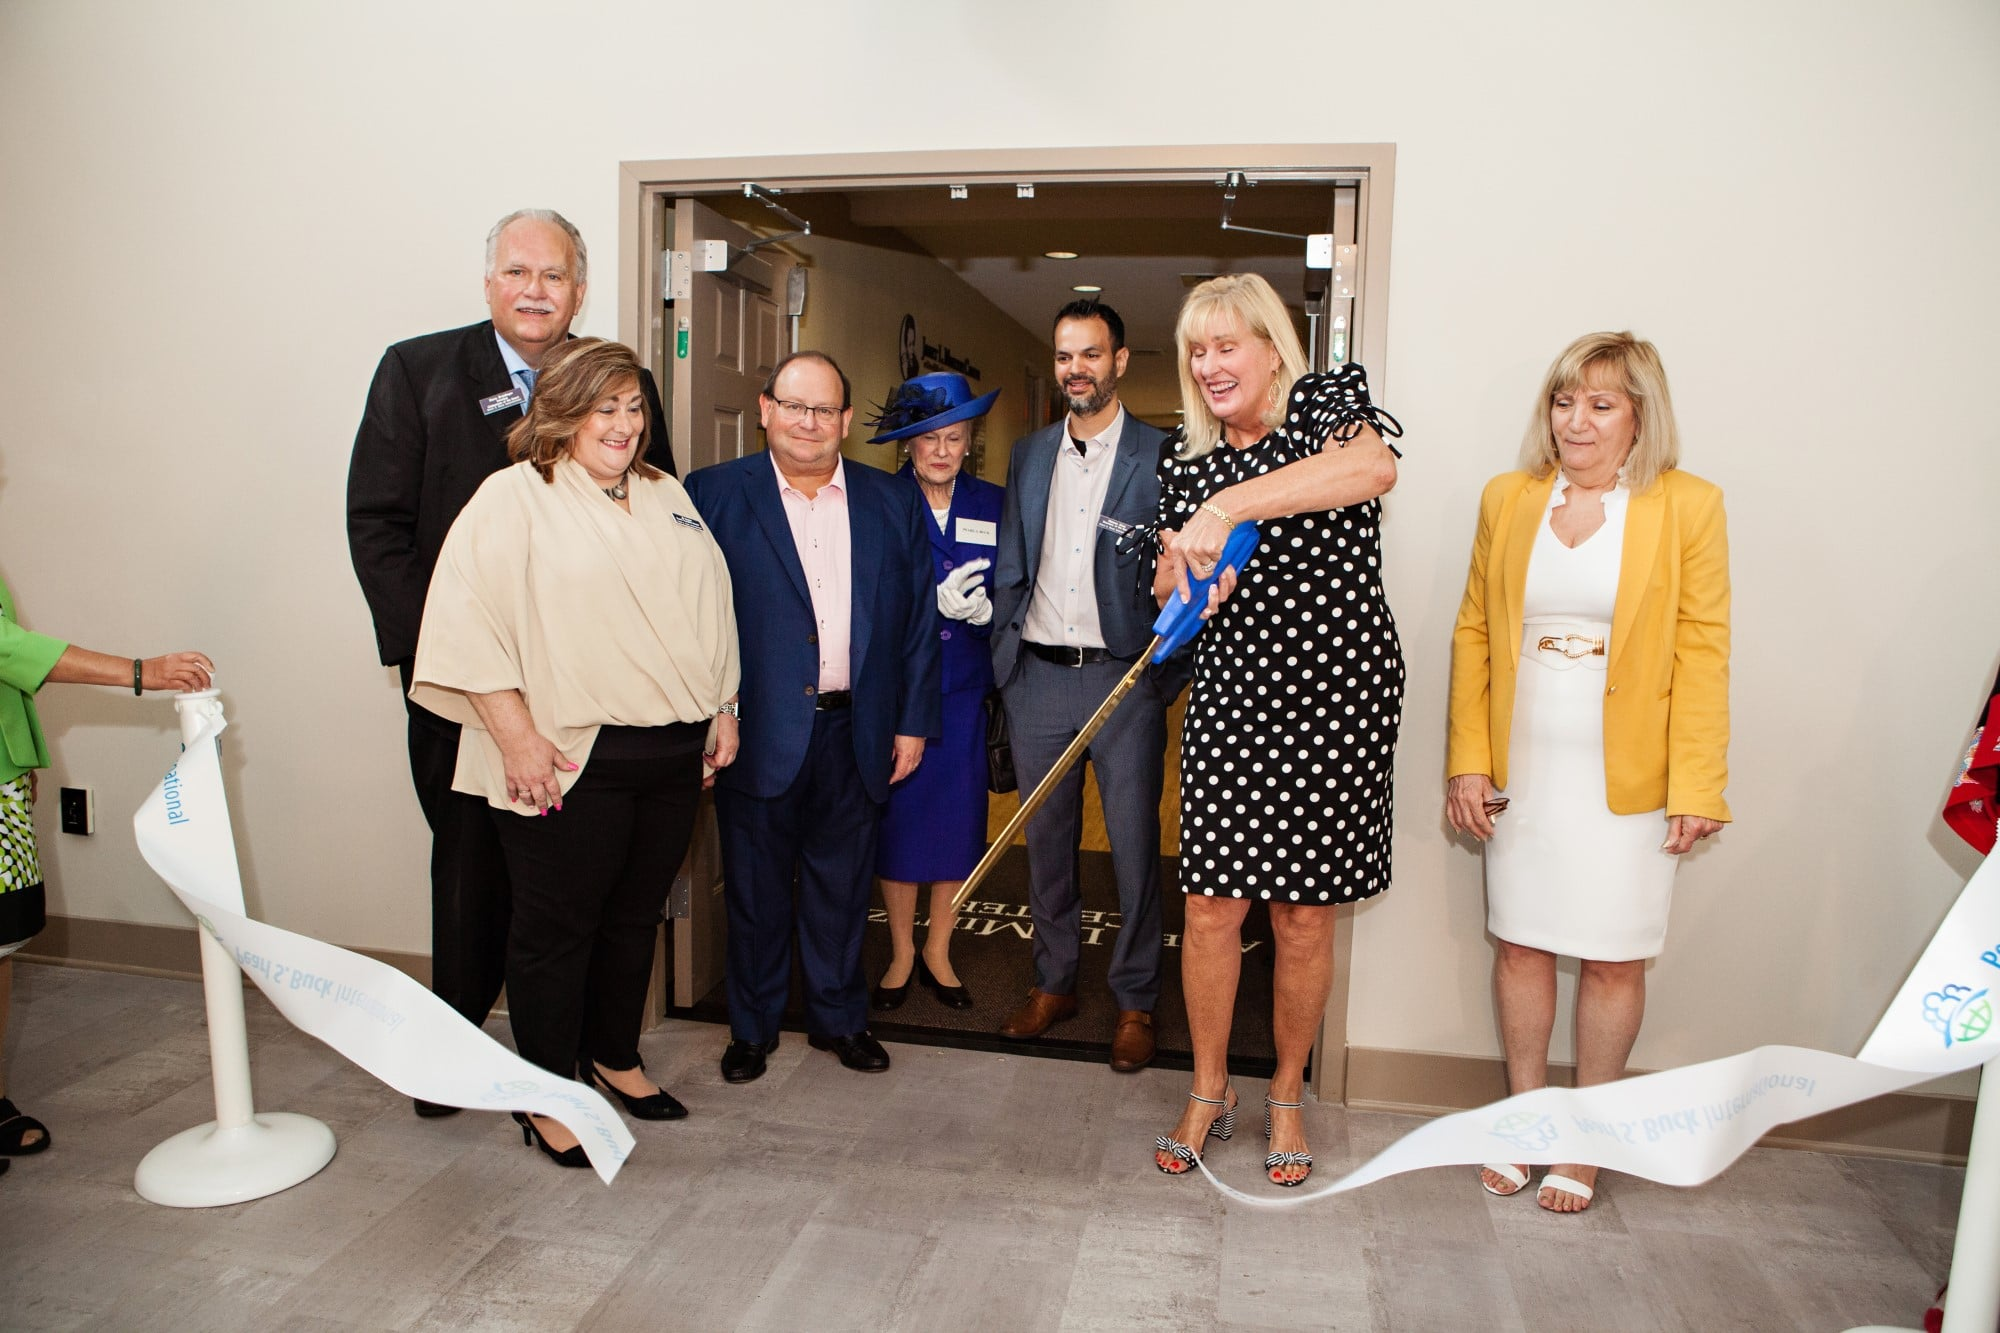 Pearl S. Buck International leadership and board members cut the ribbon at the grand opening of the Janet L. Mintzer Center